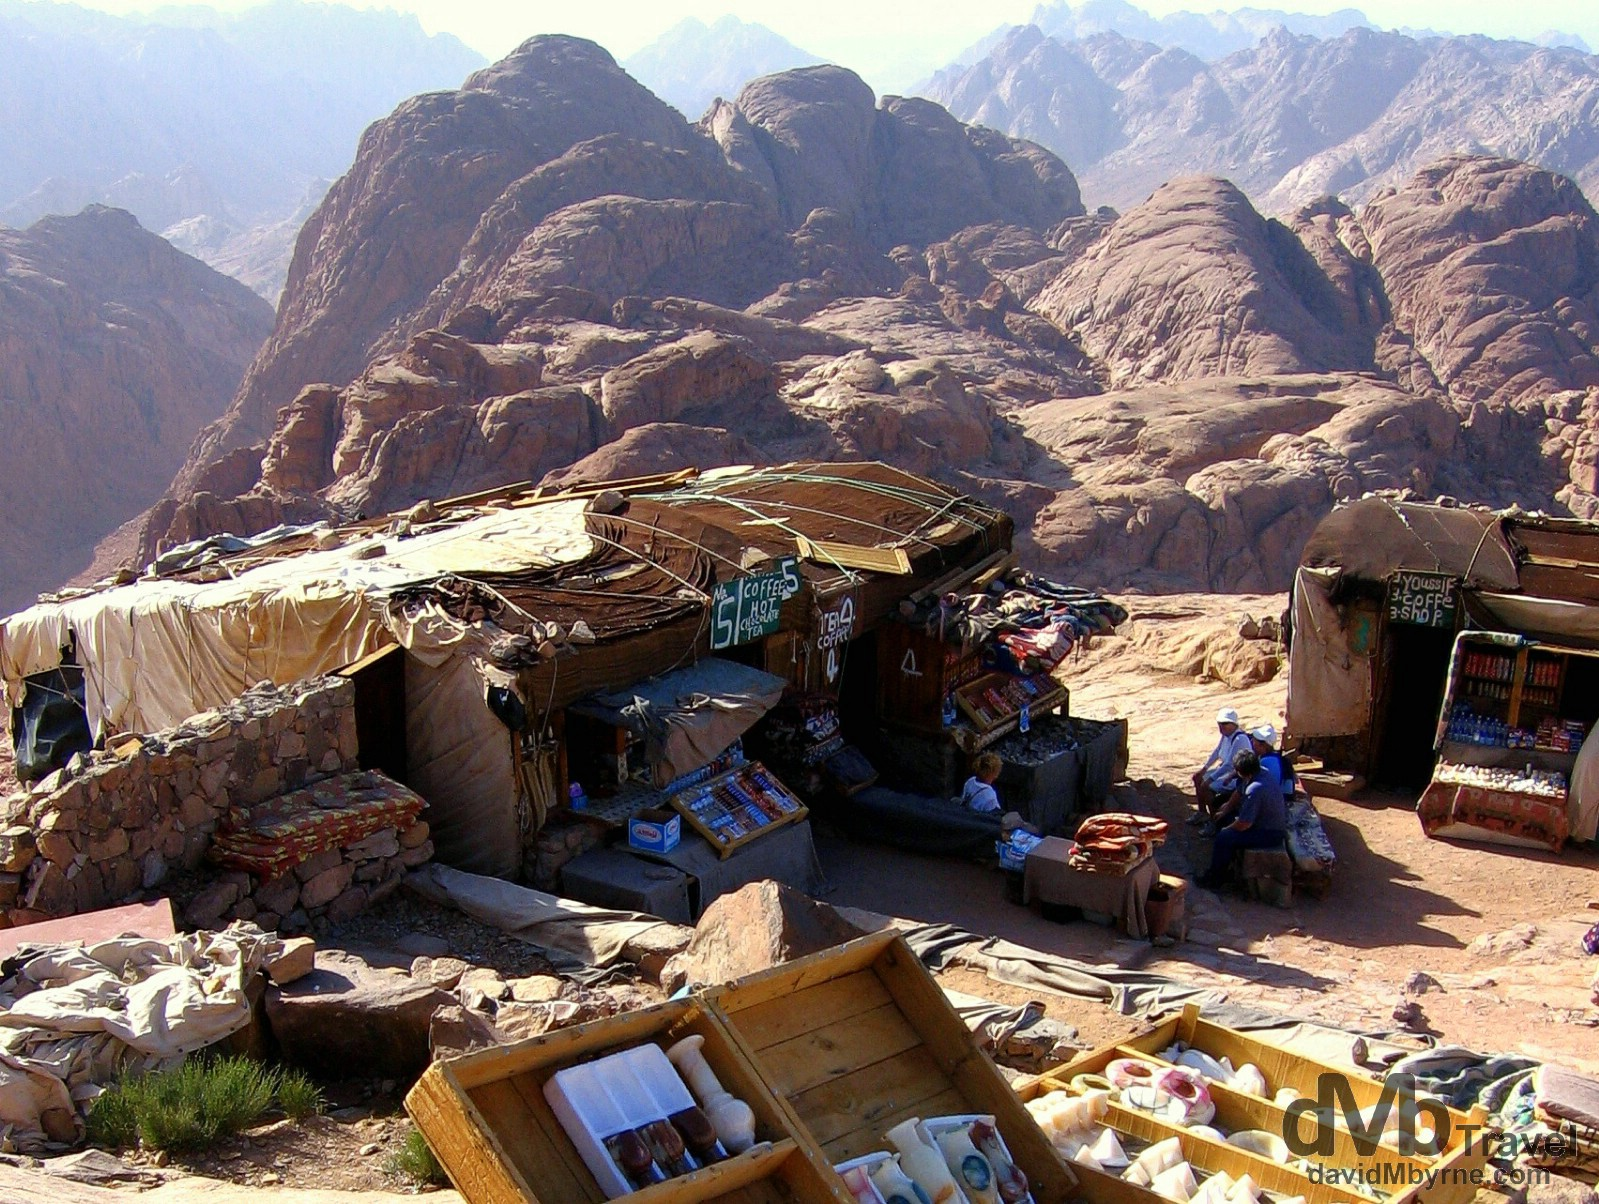 The summit of Mt. Sinai, Sinai Peninsula, Egypt. April 22, 2008.